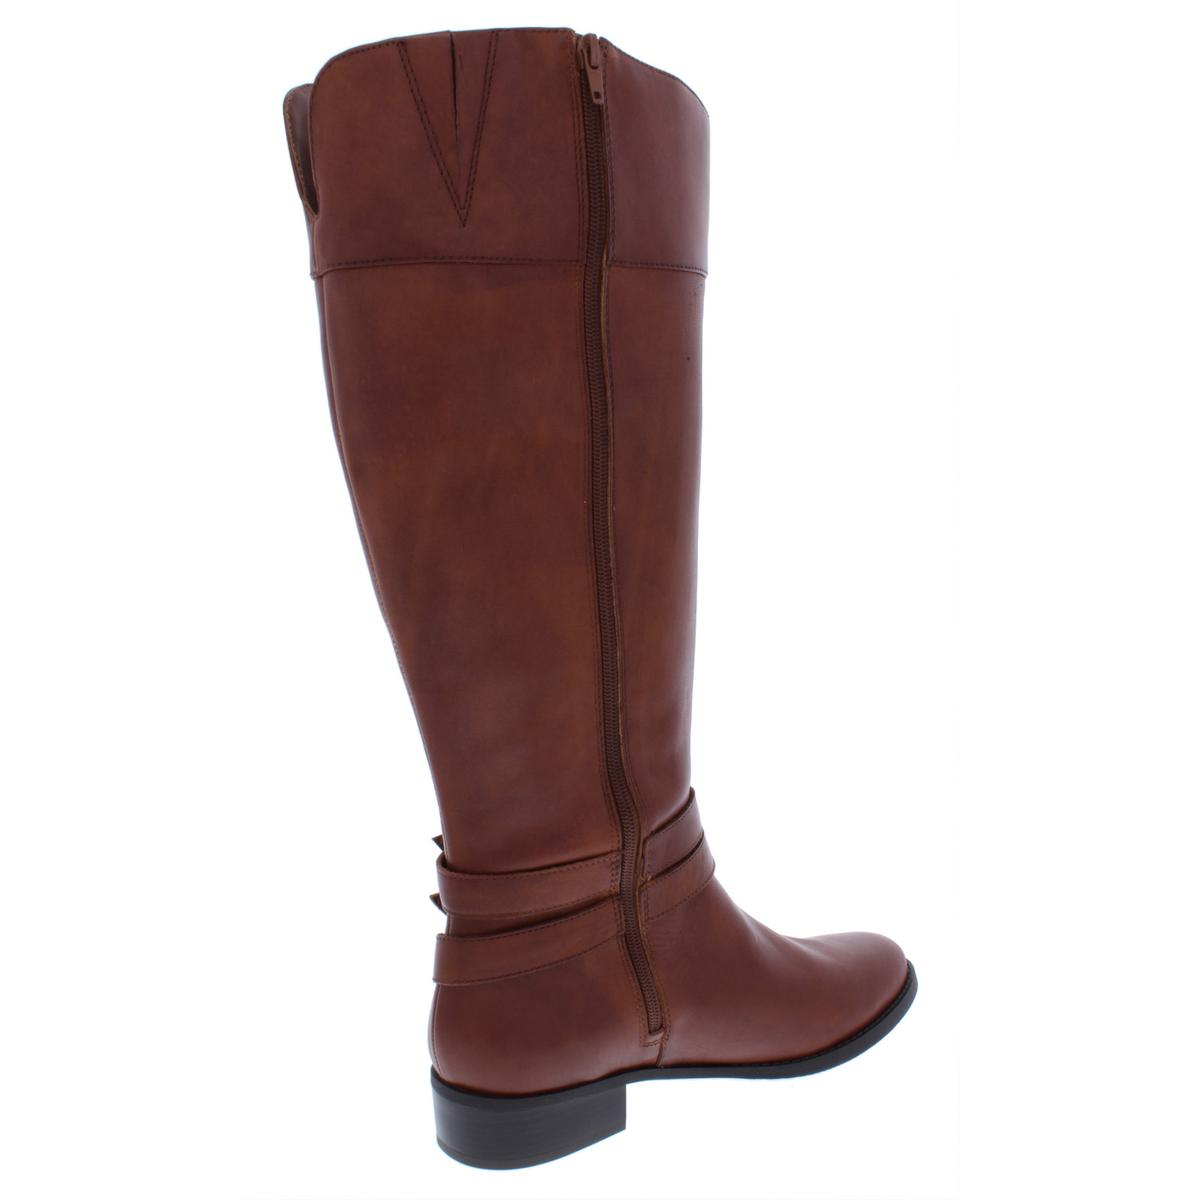 INC-Womens-Frank-II-Leather-Wide-Calf-Knee-High-Riding-Boots-Shoes-BHFO-5125 thumbnail 8